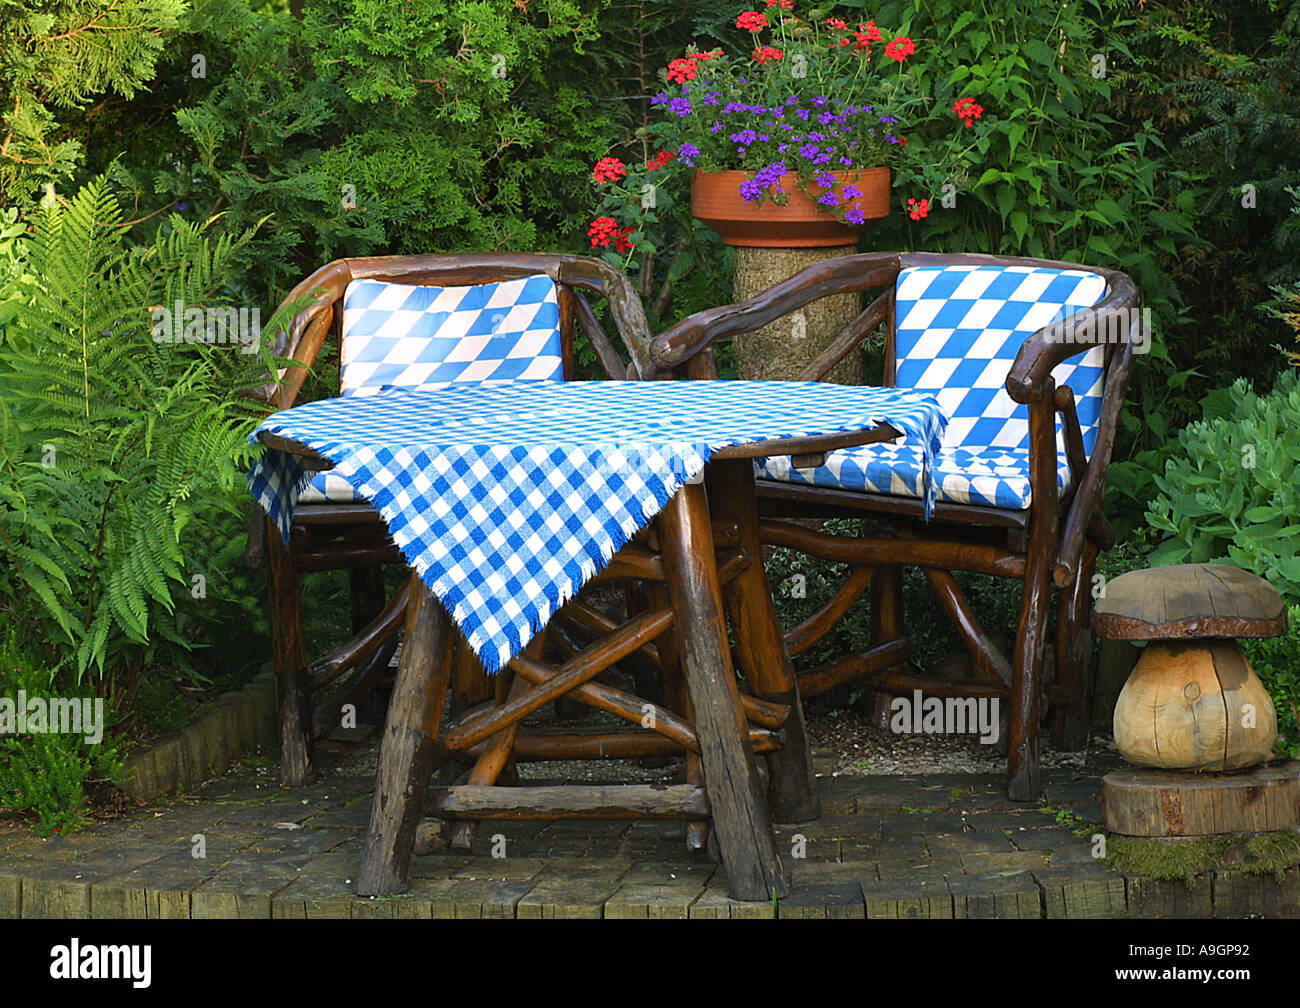 Seat, Two Garden Chairs With Garden Table, Chair Cushion And Tablecloth In  Bavarian Blue White